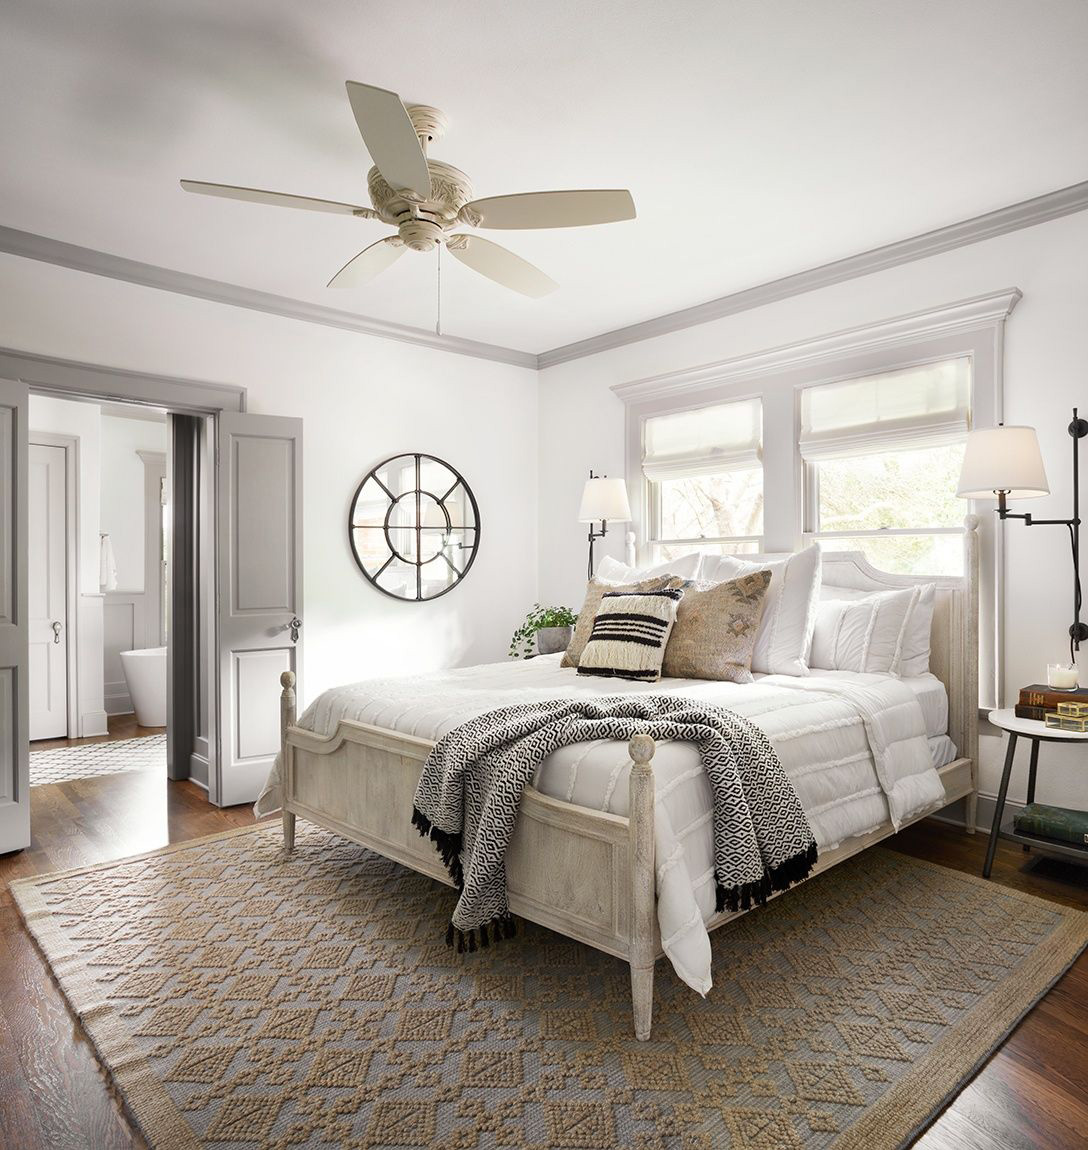 Joanna Gaines Bedroom Design